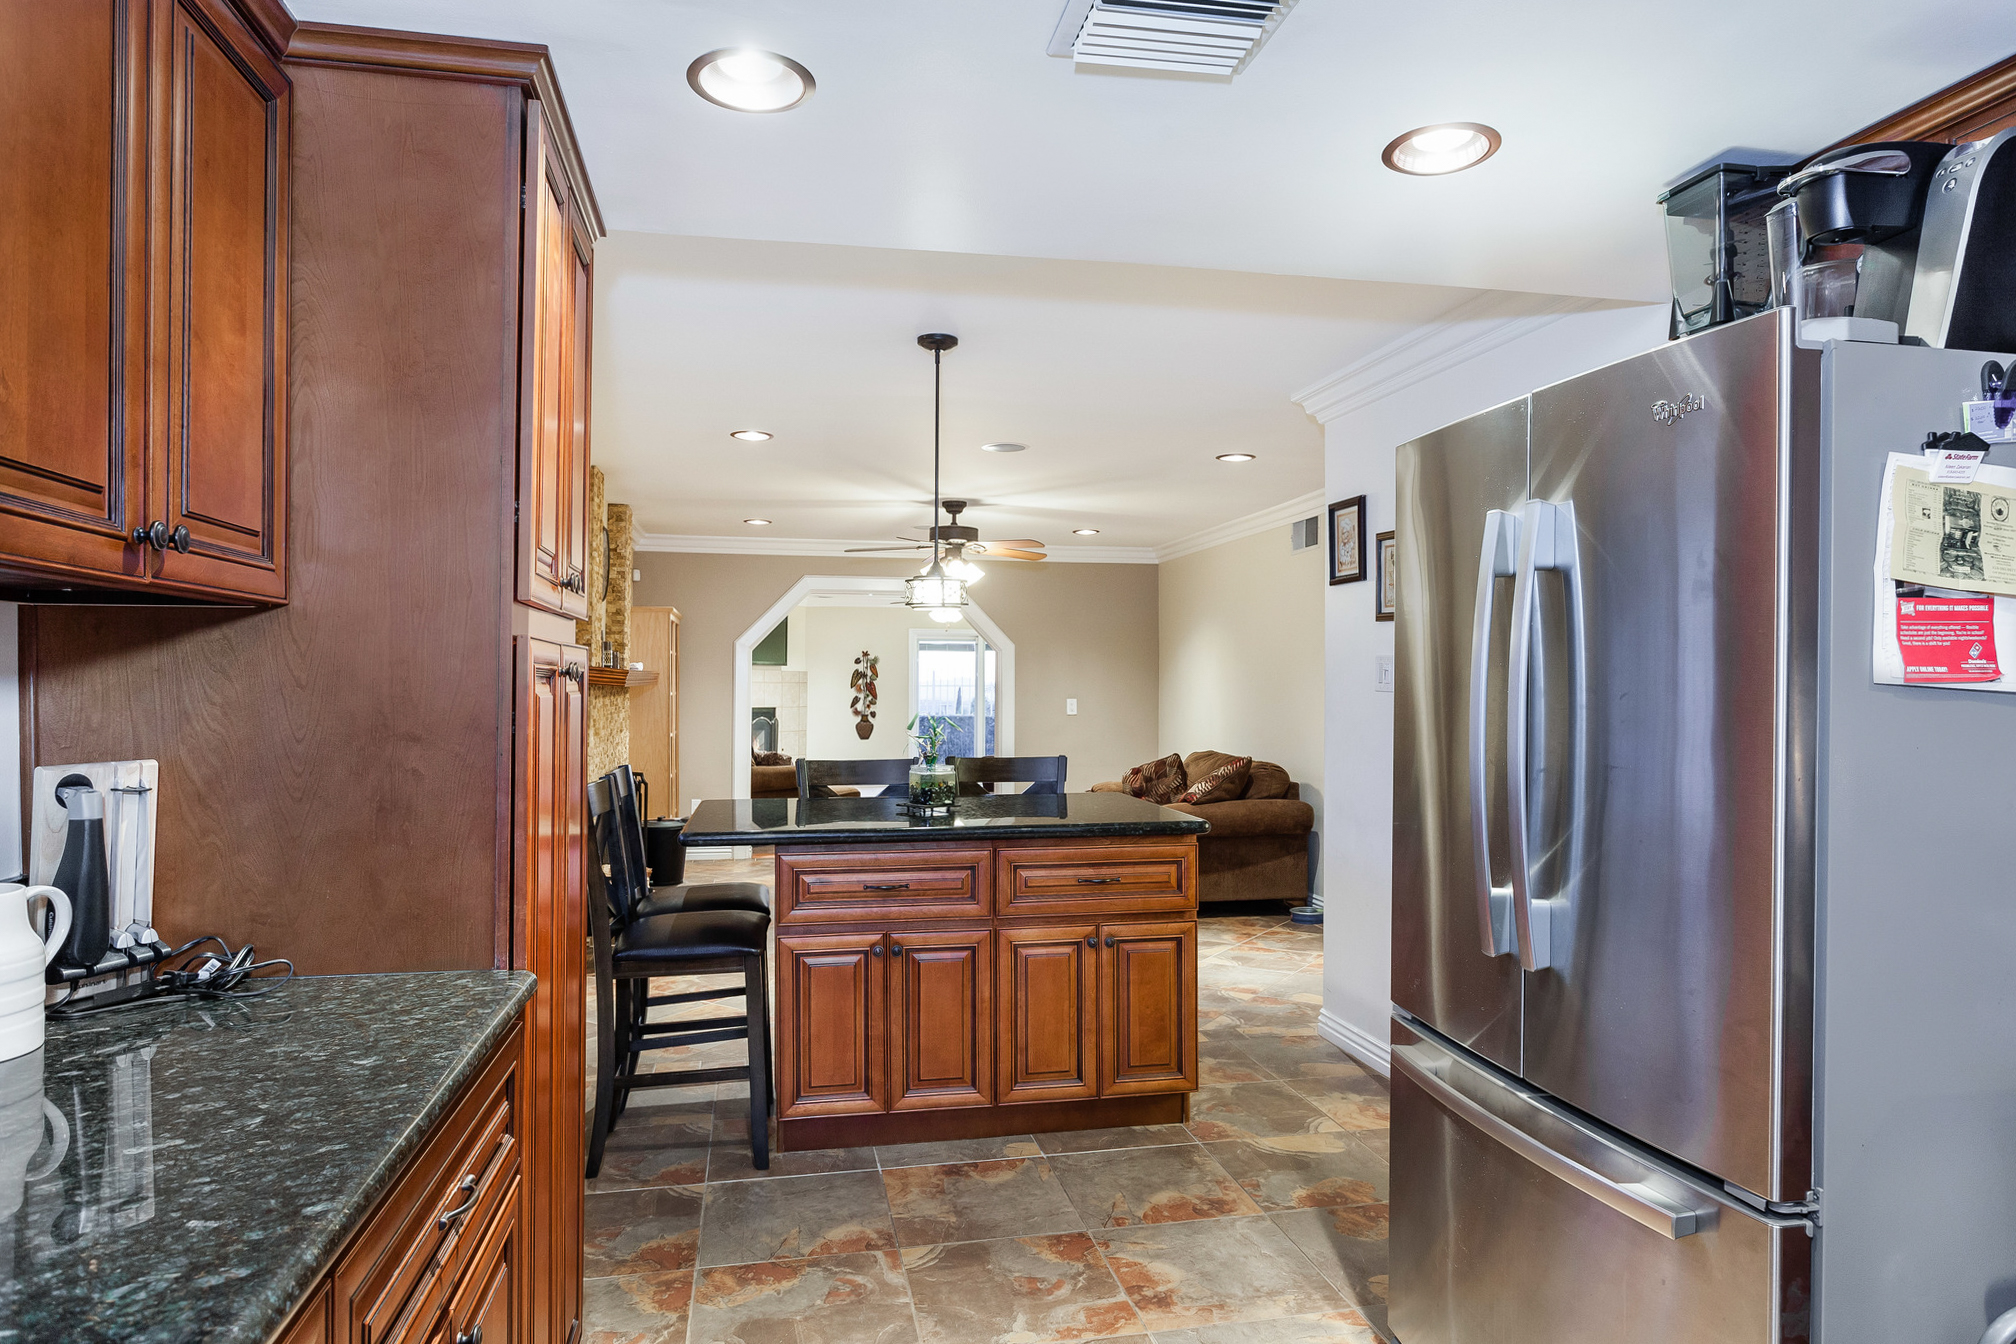 view of kitchen reverse angle